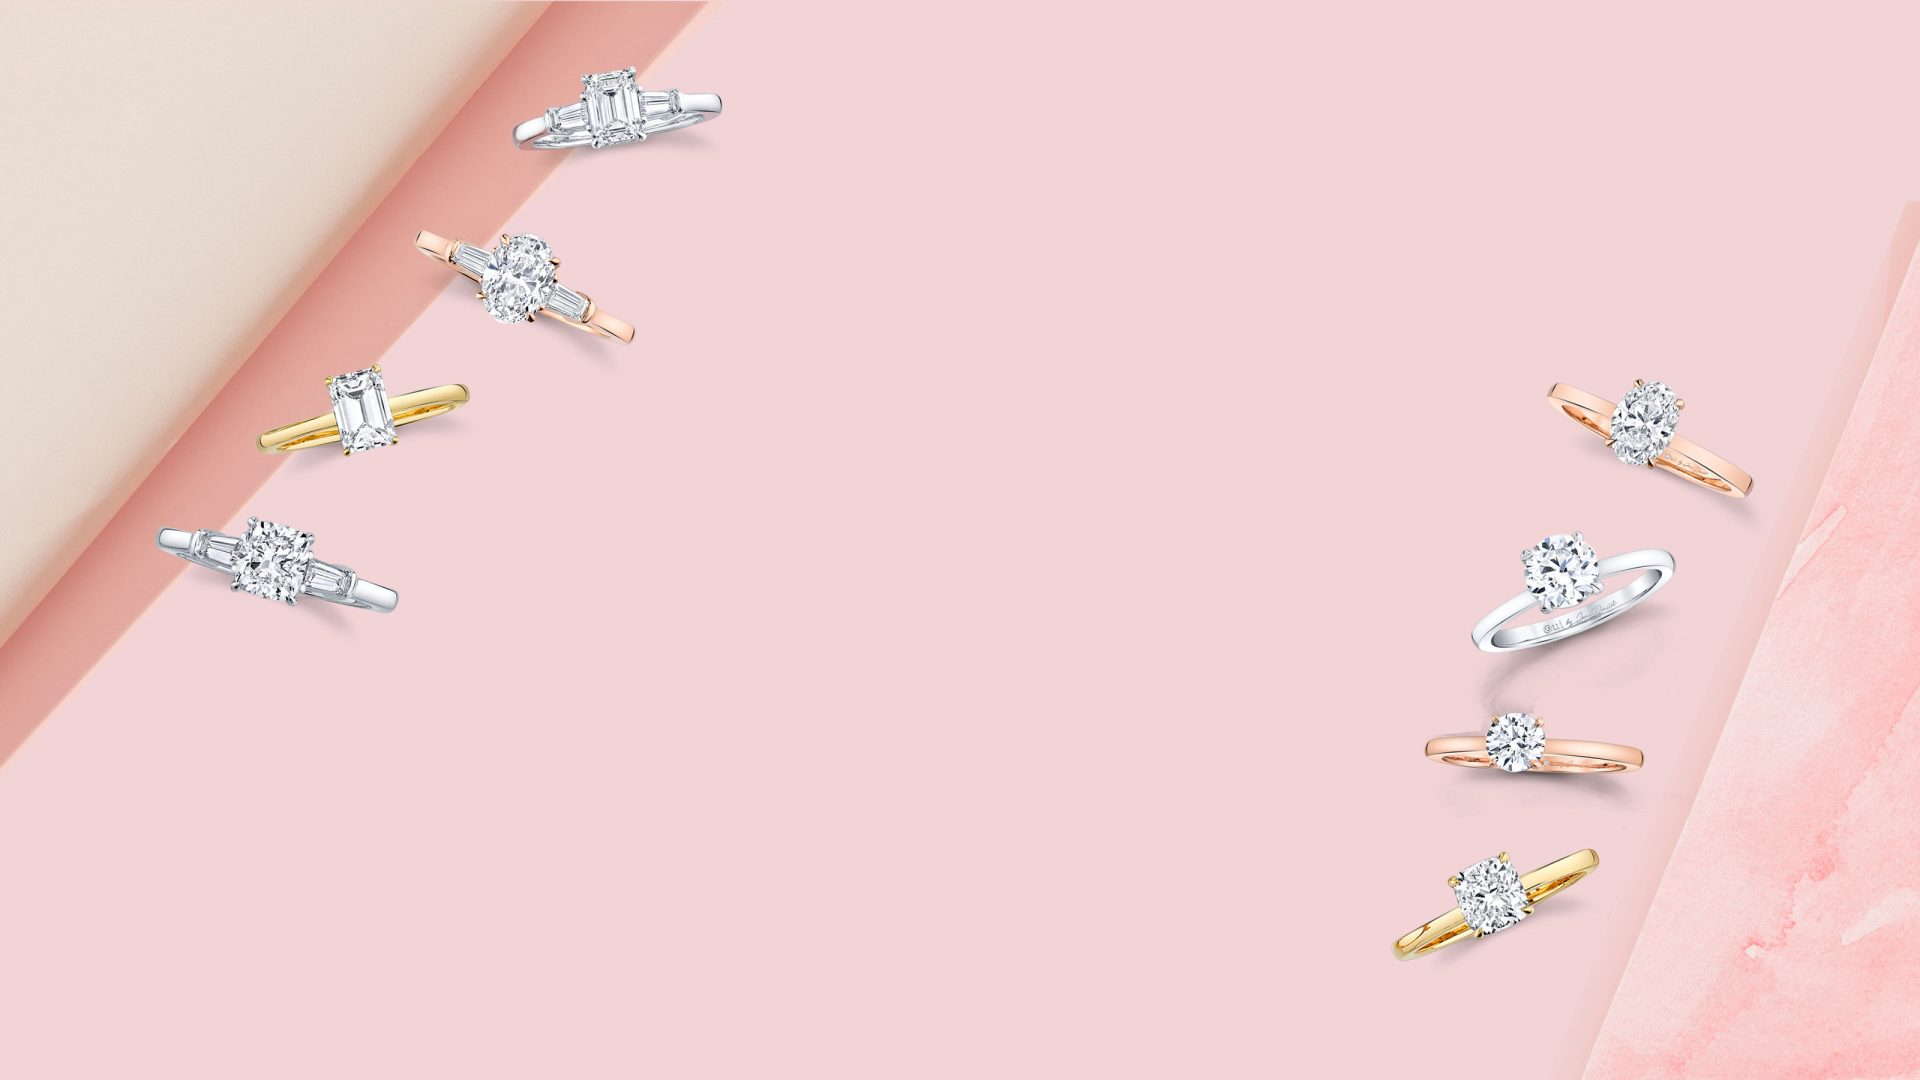 Lab Grown Engagement Rings Product Shots on Pink Background